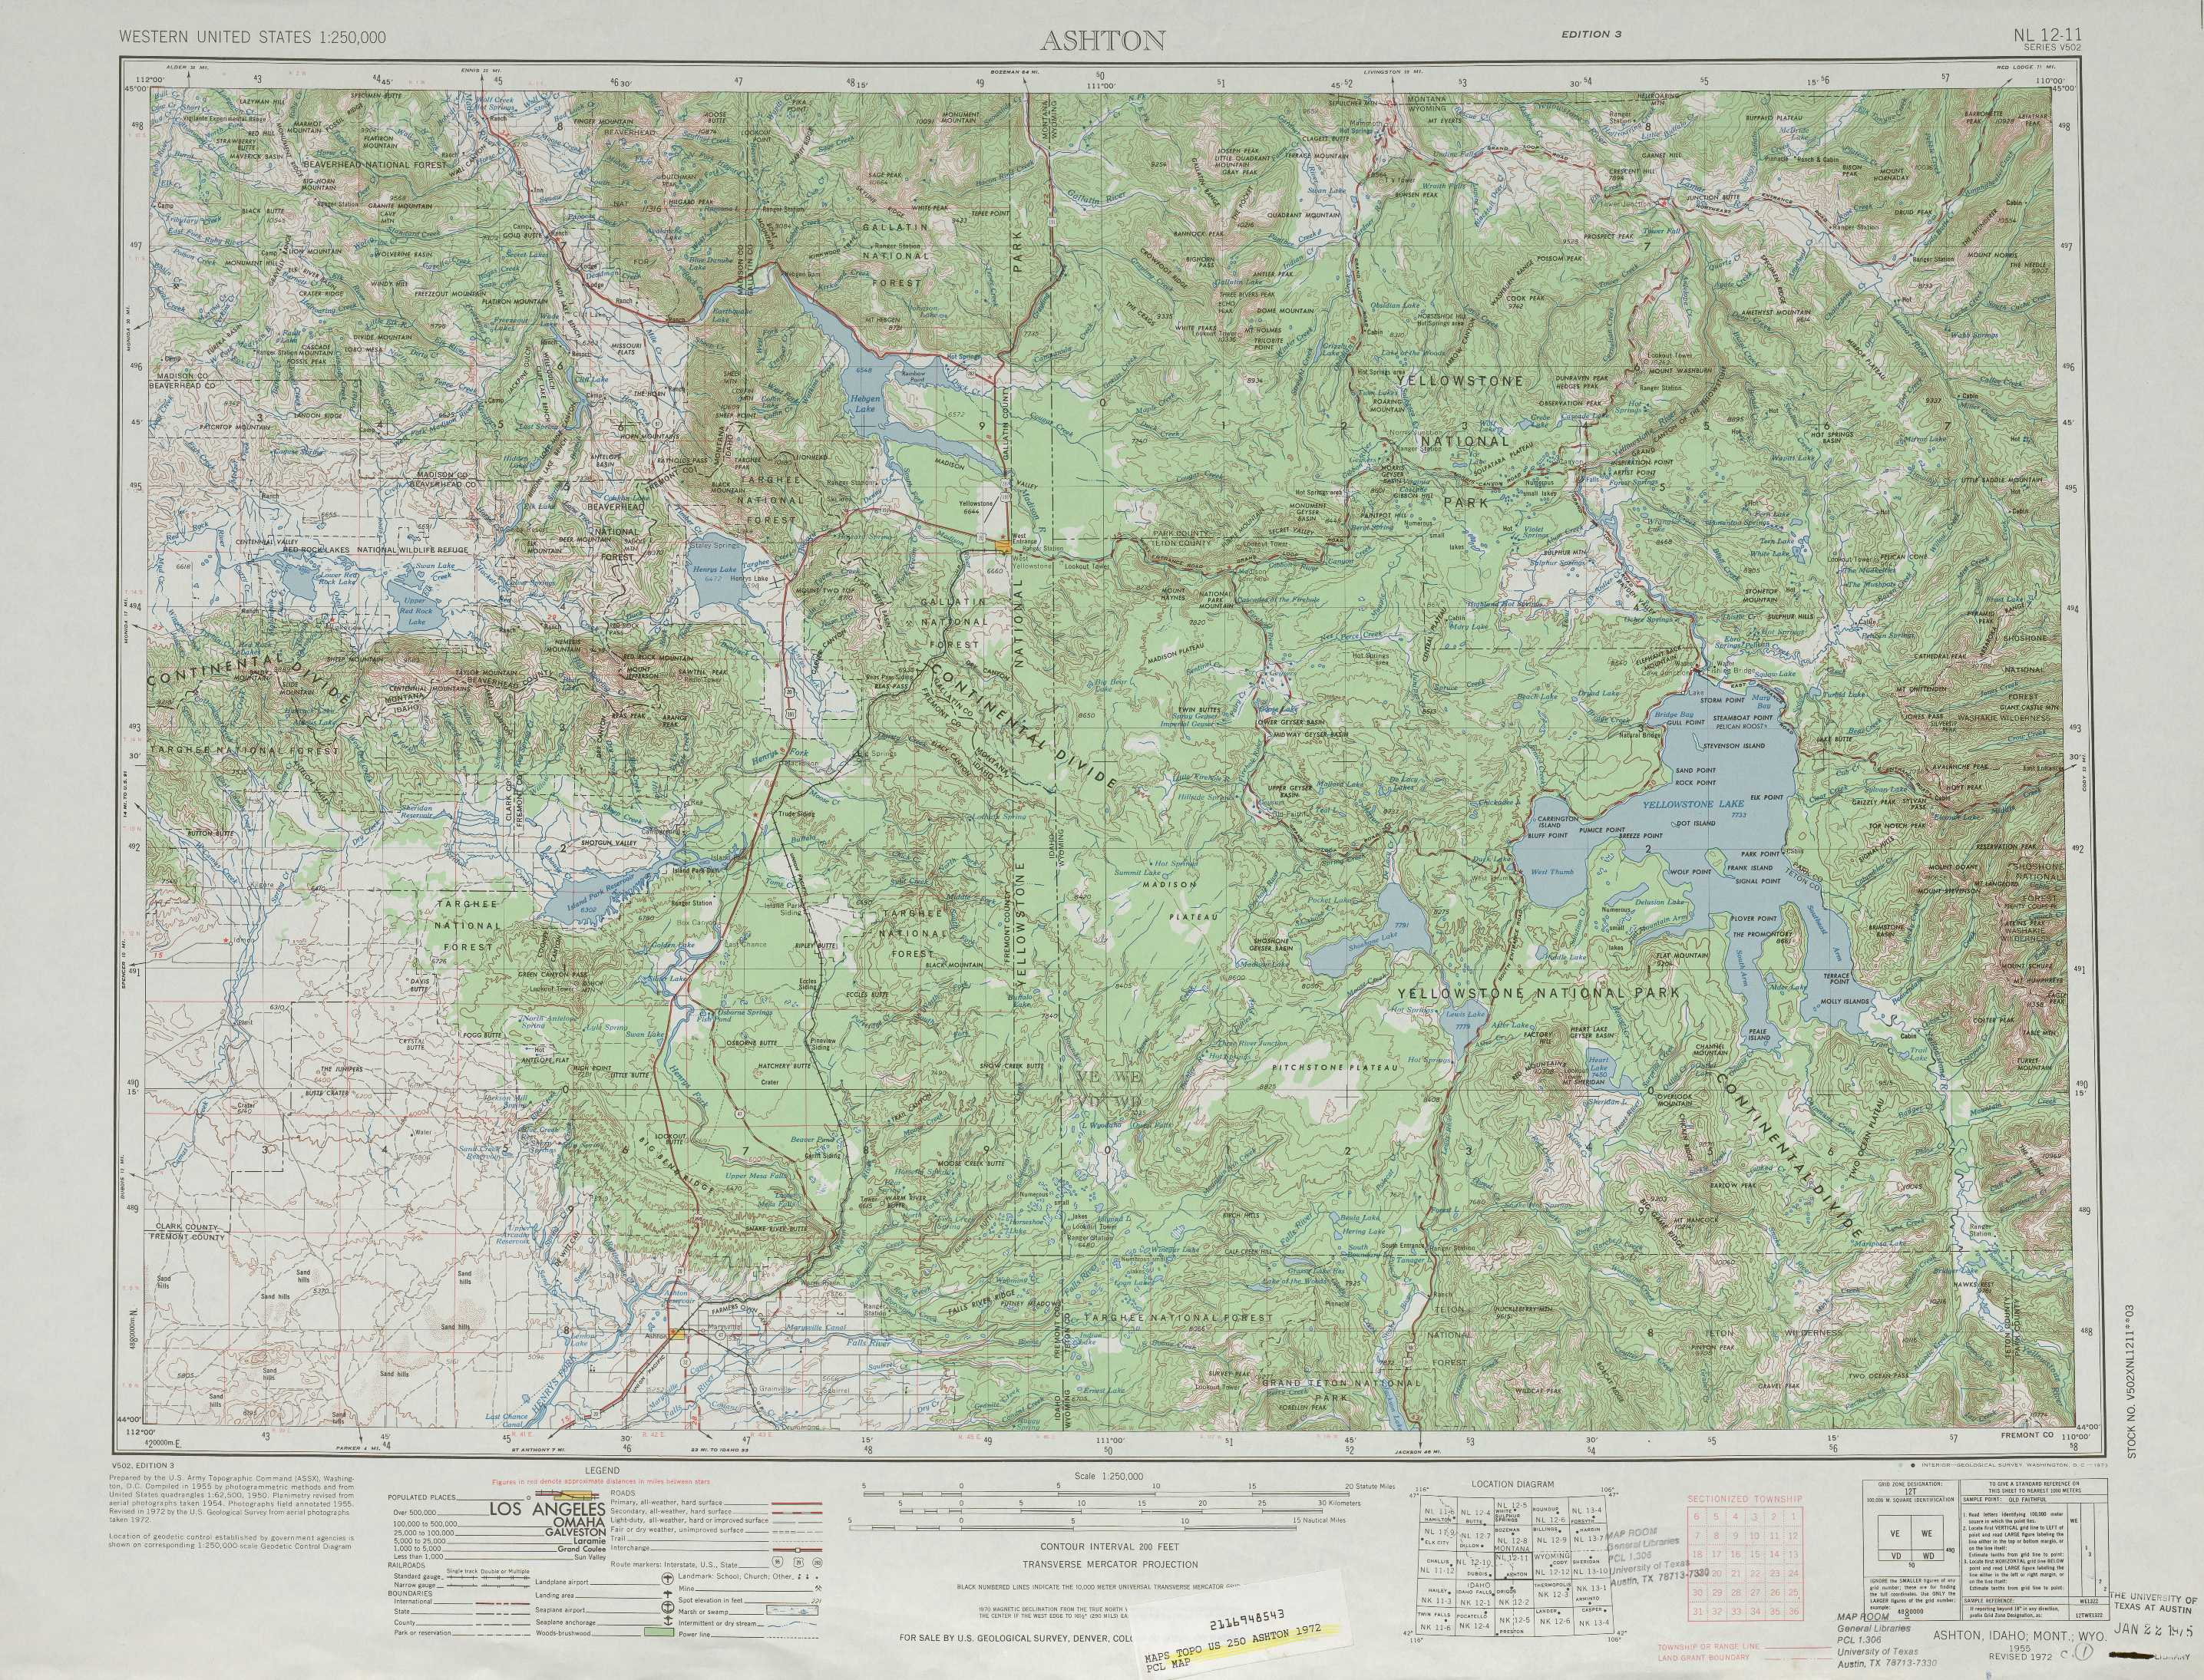 Ashton Topographic Maps WY ID MT USGS Topo Quad A At - Map of montana and wyoming